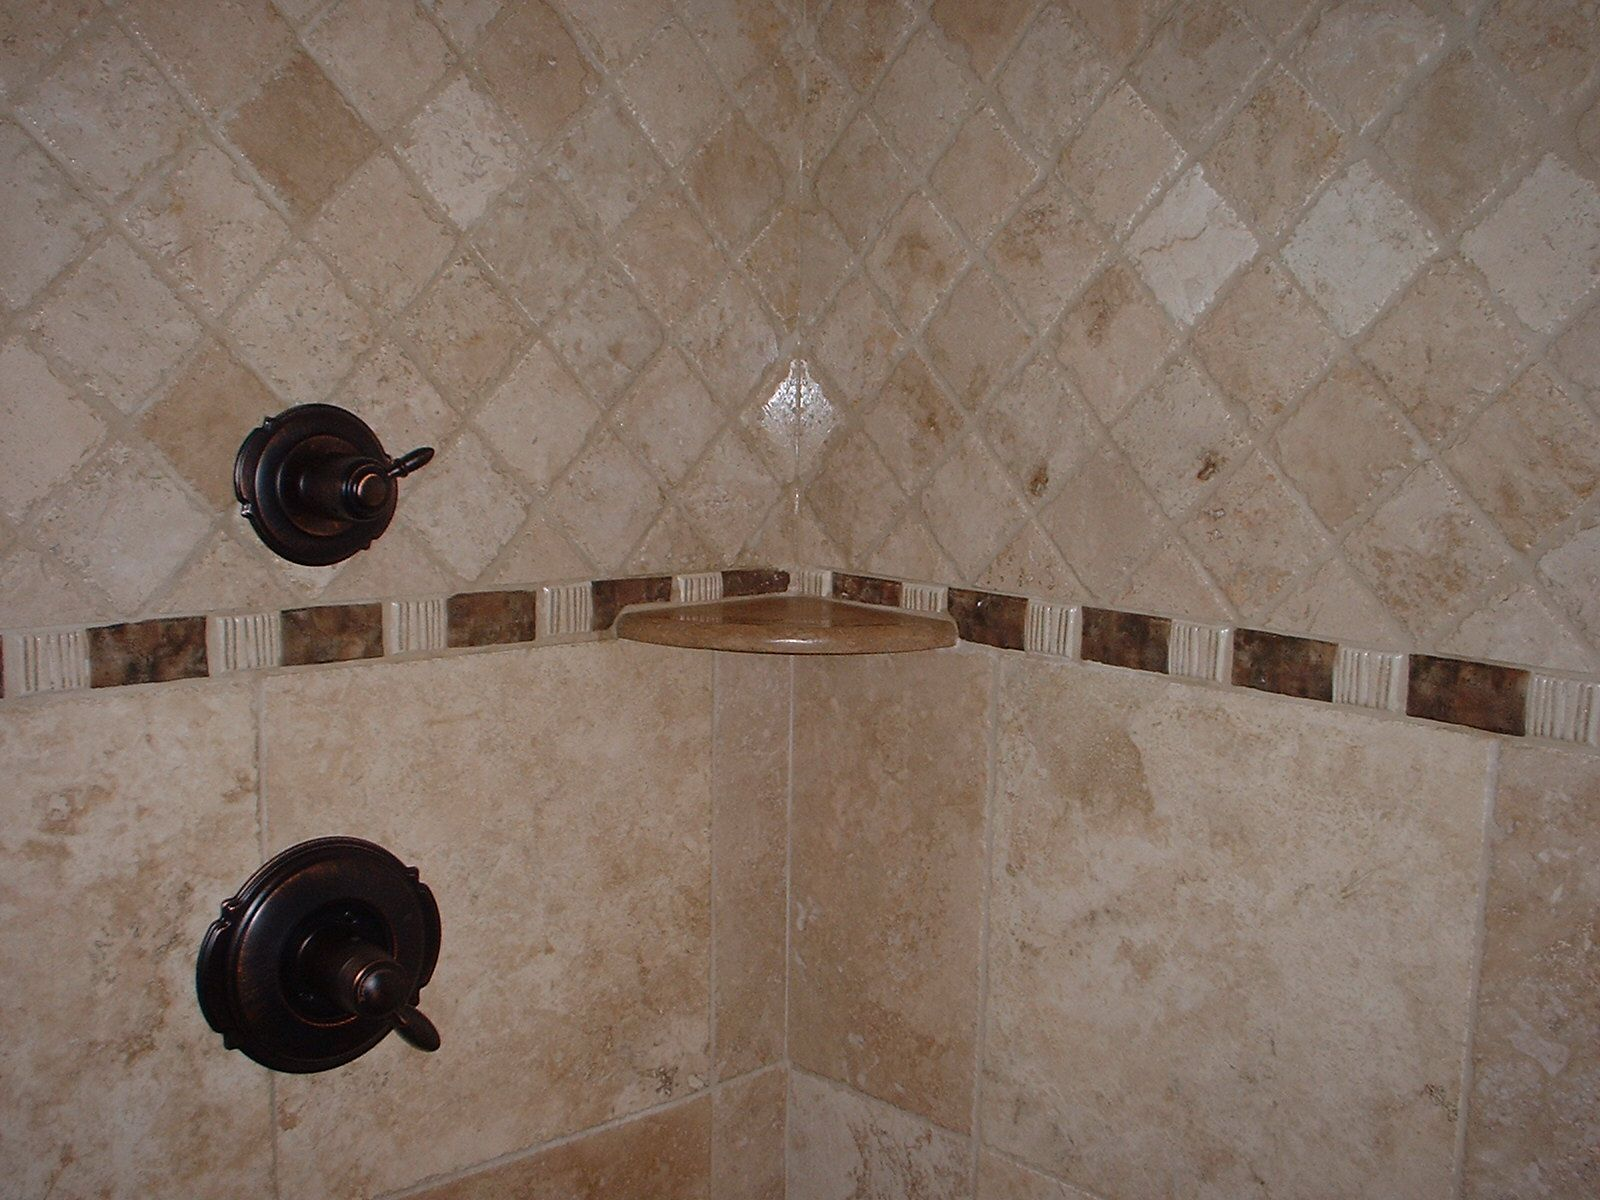 Shower Wall Tile Design 1000 images about bathroom tile design ideas on pinterest tile ideas bathroom shower tiles and tile Find This Pin And More On Bathroom Tile Bathroom Shower Design